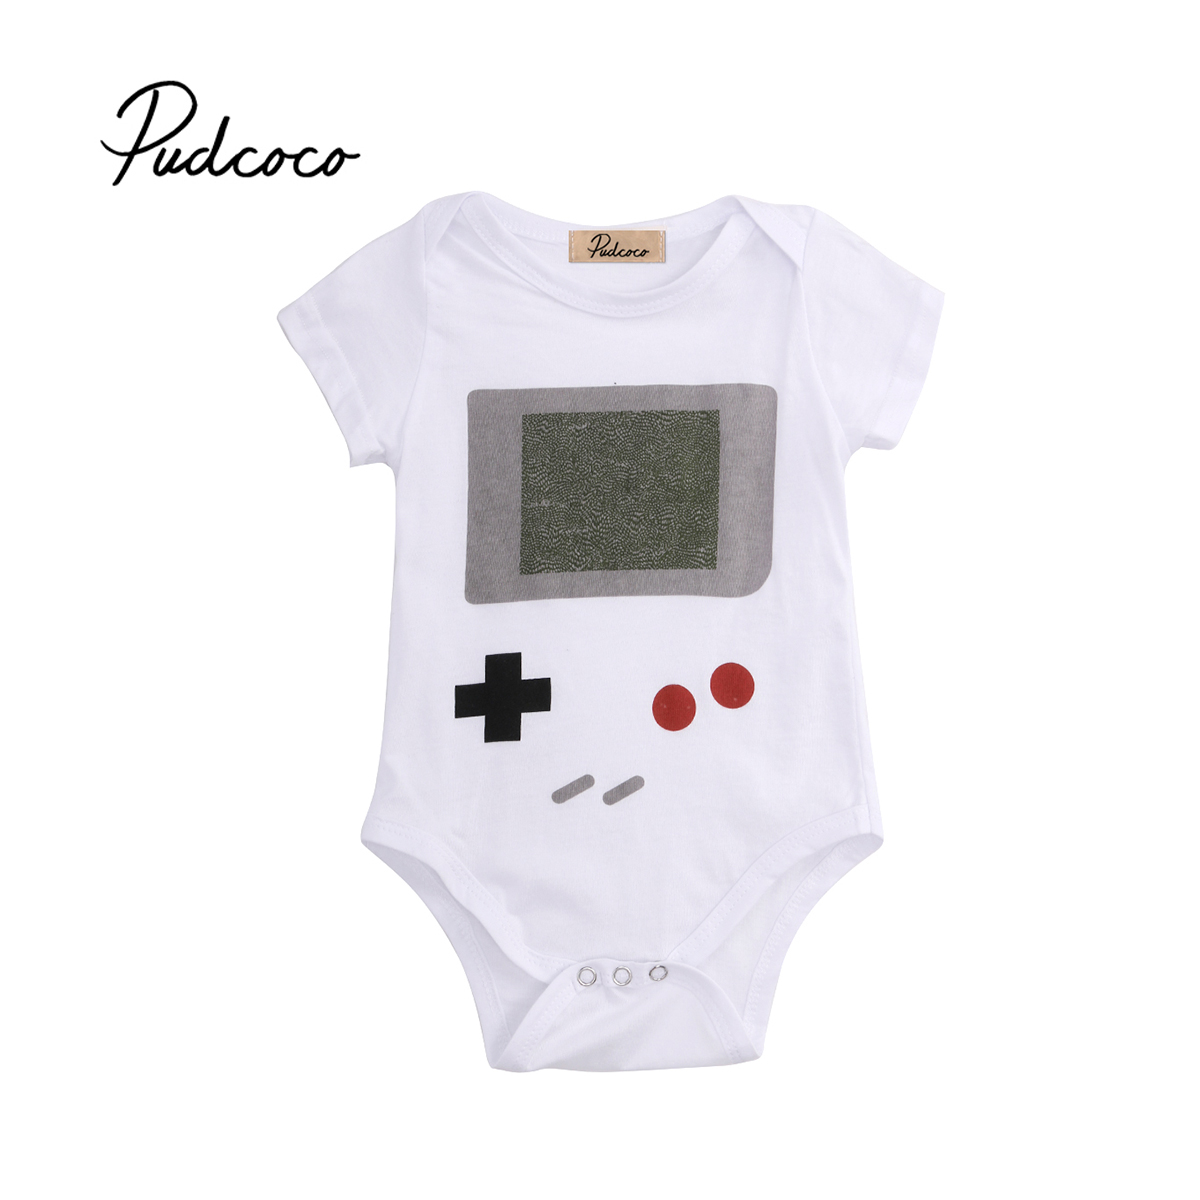 Pudcoco 2018 Child Kid Newborn Baby Girl Boy Cotton Bodysuit Games Print Short Sleeves Sunsuit Jumpsuit Outfit Clothes 0-24M